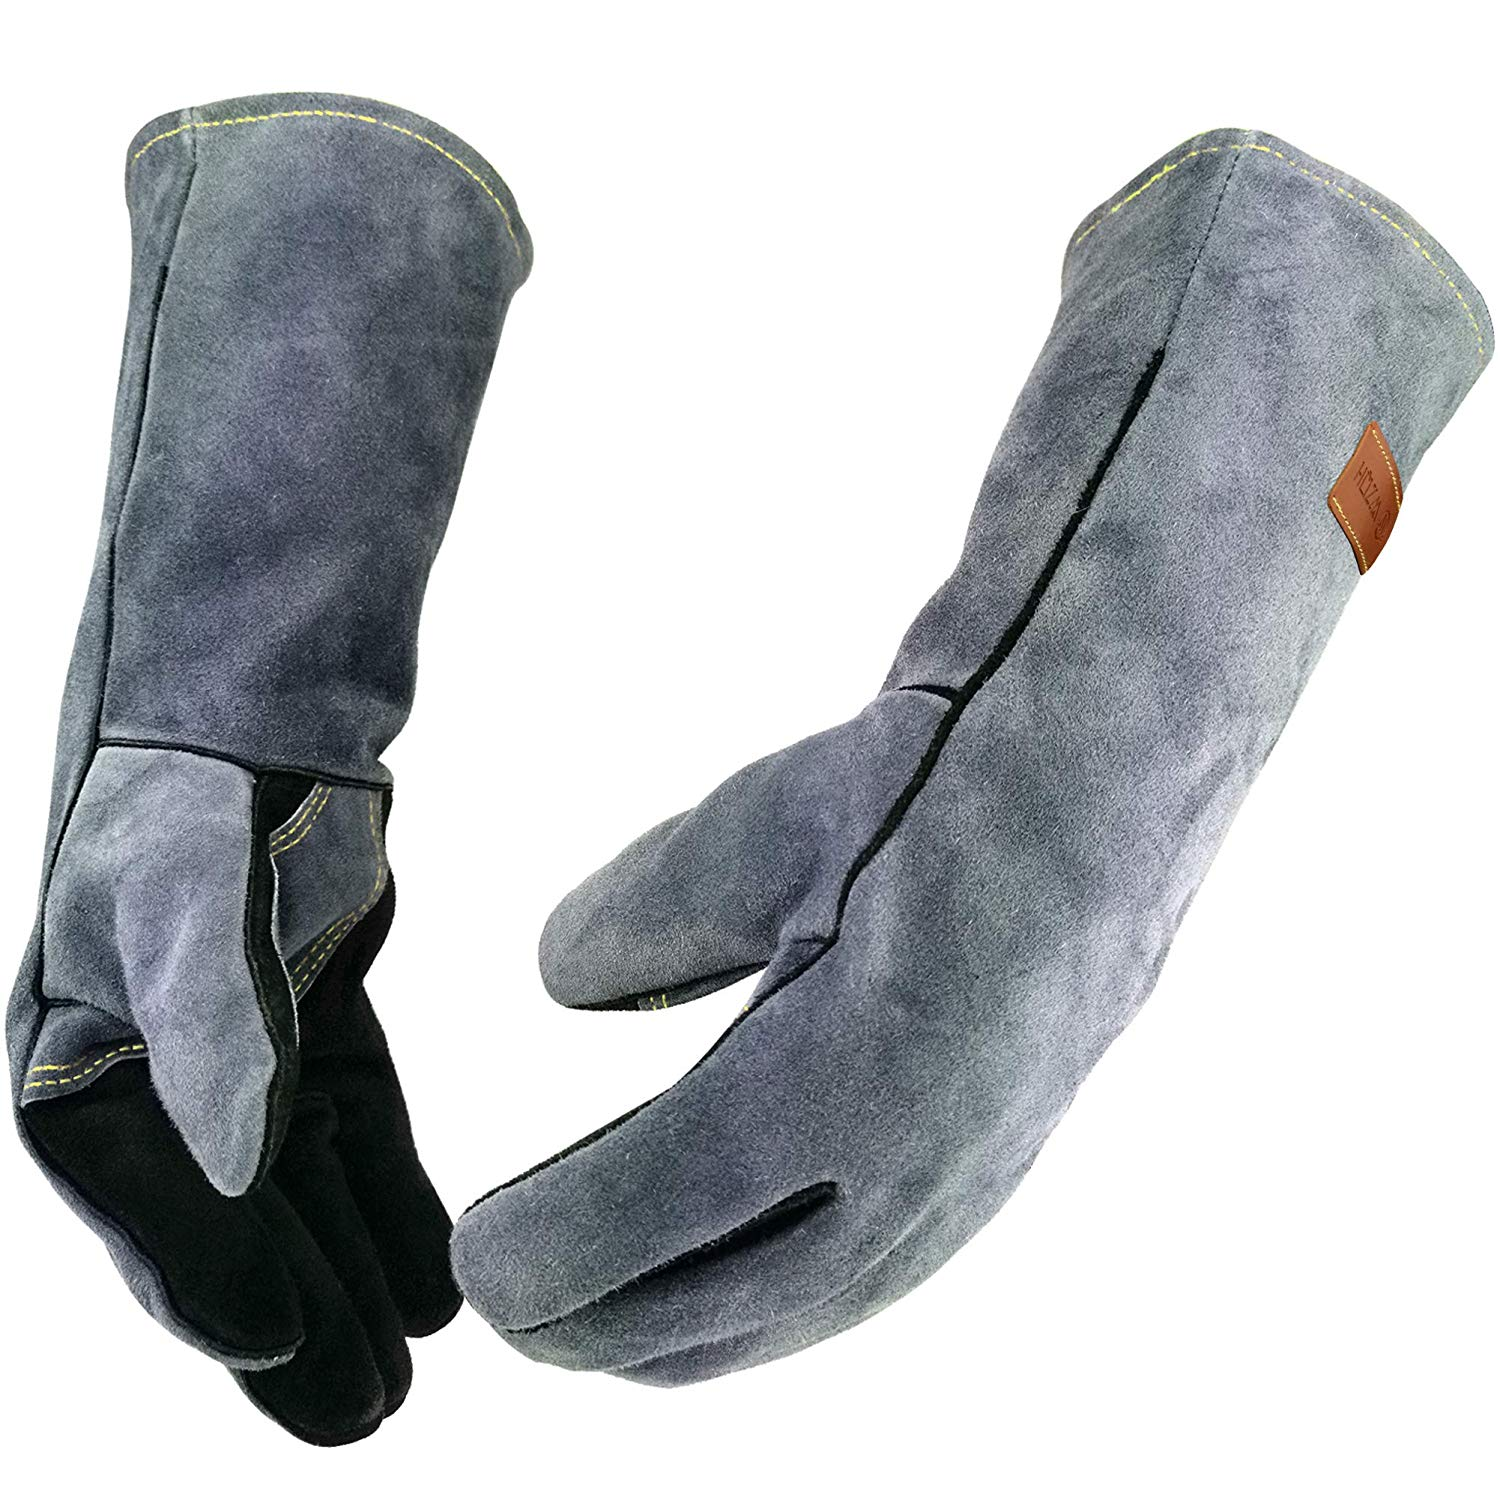 Leather Forge Welding Gloves